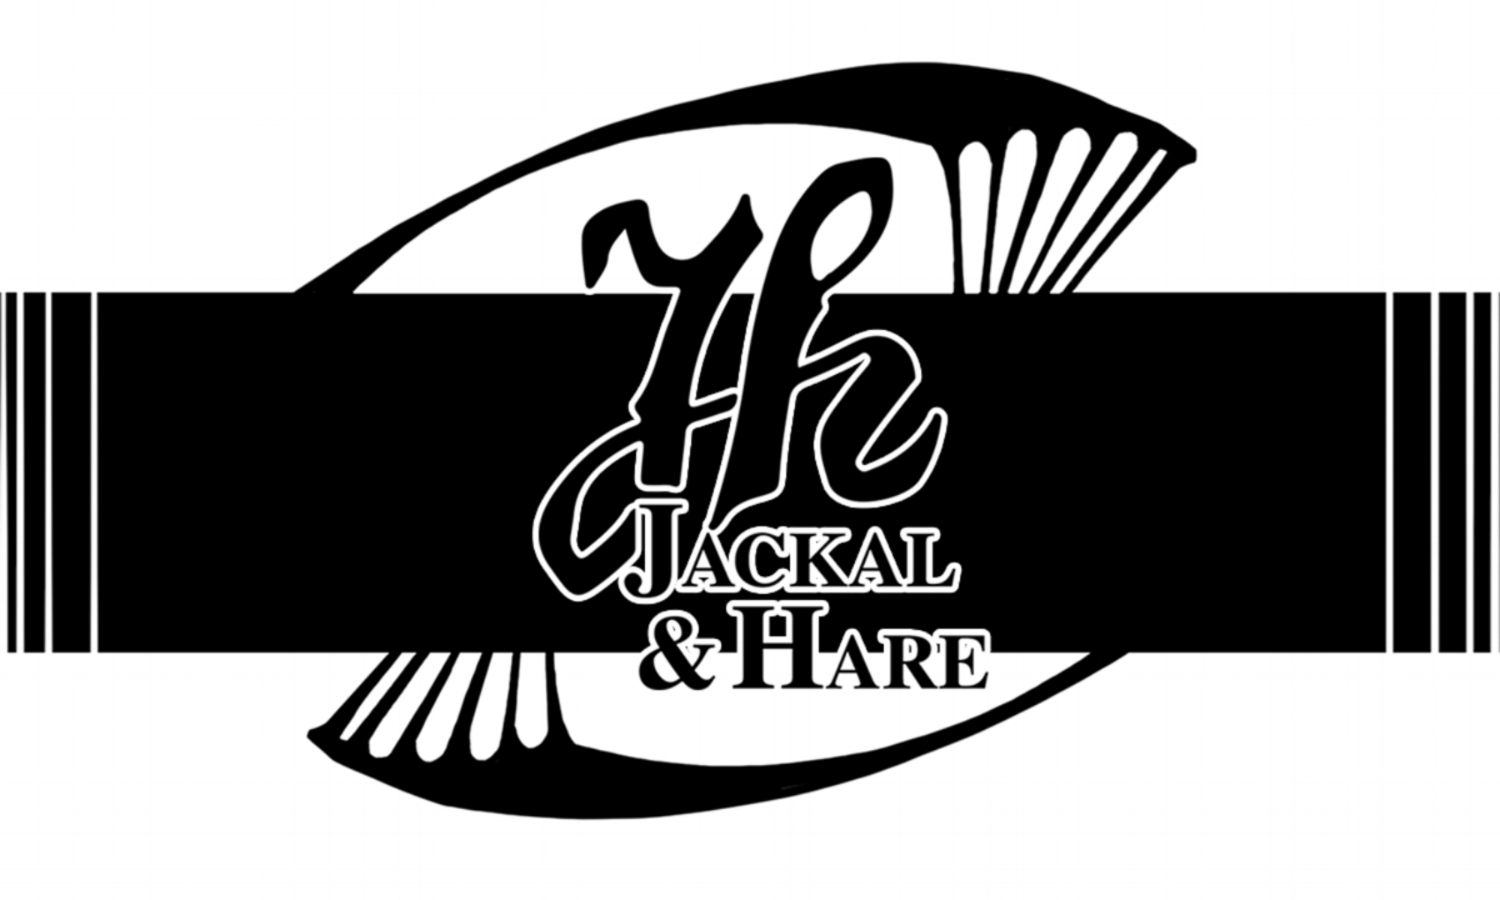 Jackal and Hare